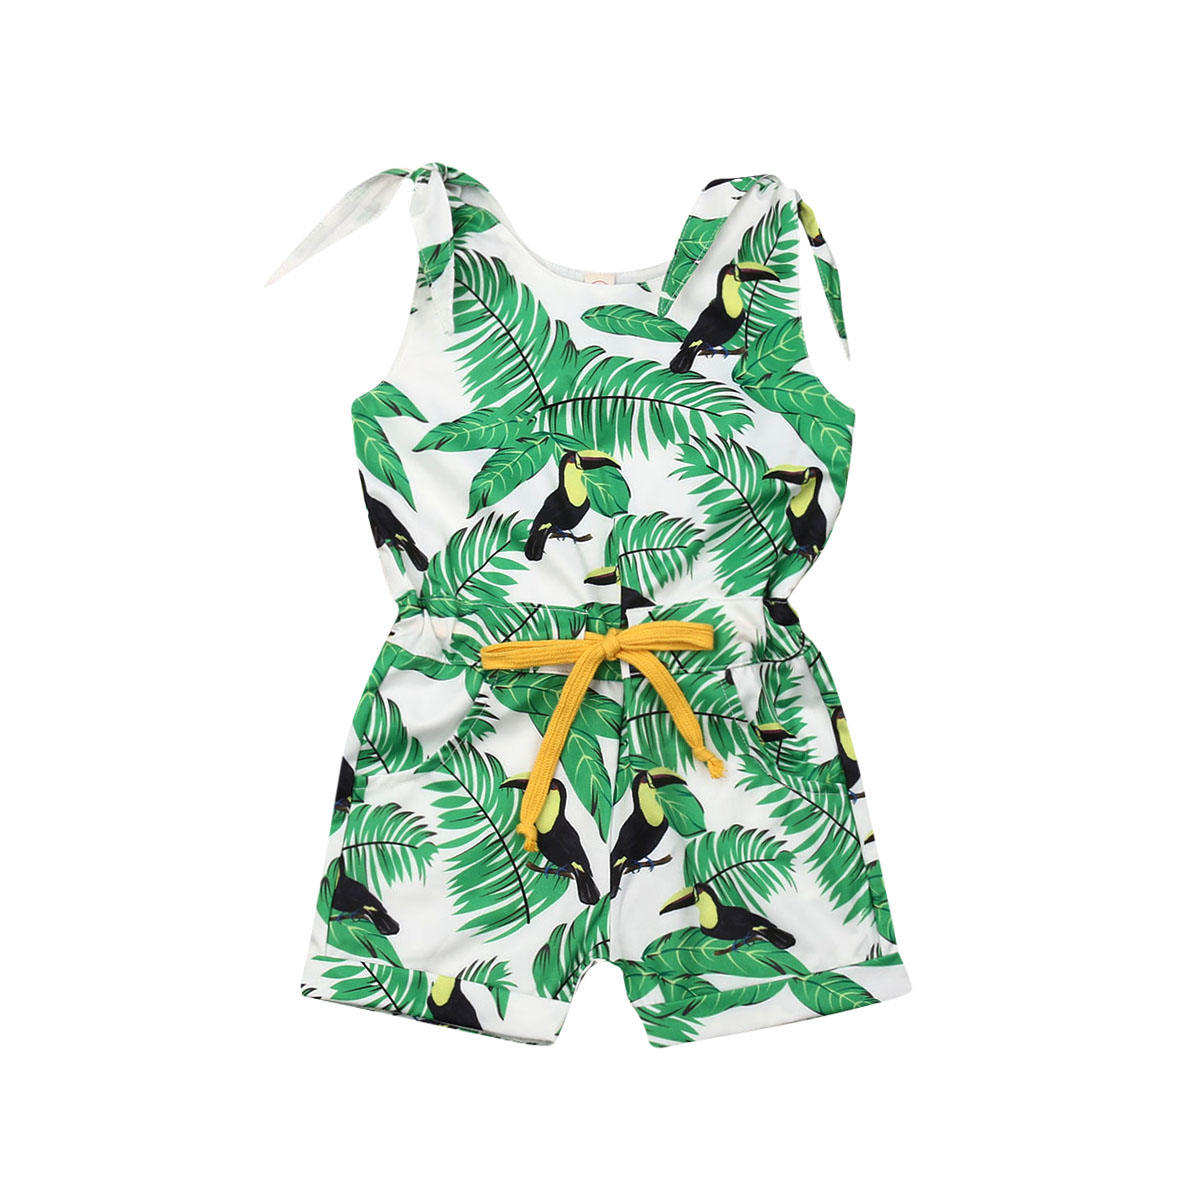 2019 New Infants Baby Girls Kids Summer Sling   Romper   Clothes Sleeveless Leaves Flowers Print Bow Jumpsuits Outfit 1-6Y